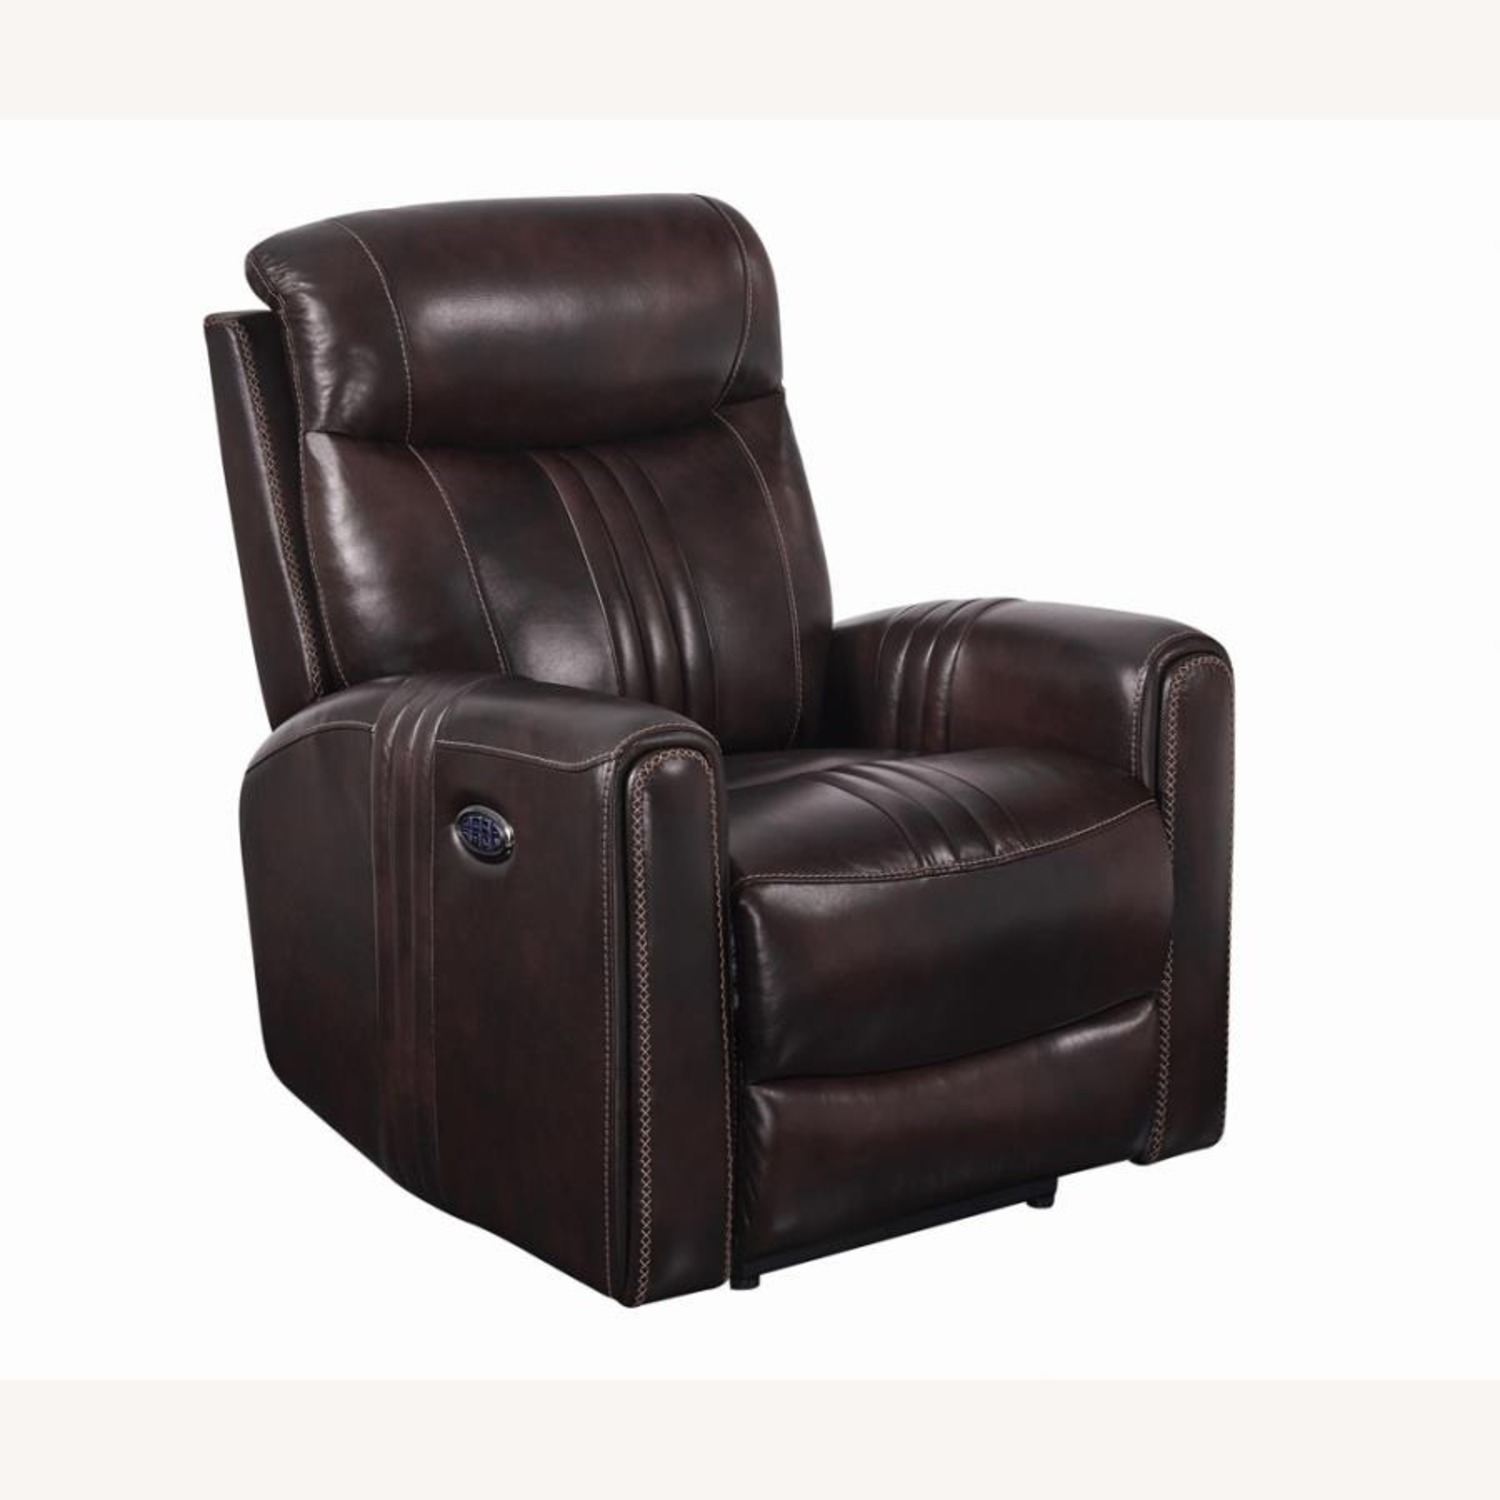 Modern Power Recliner In Brown Top Grain Leather - image-0